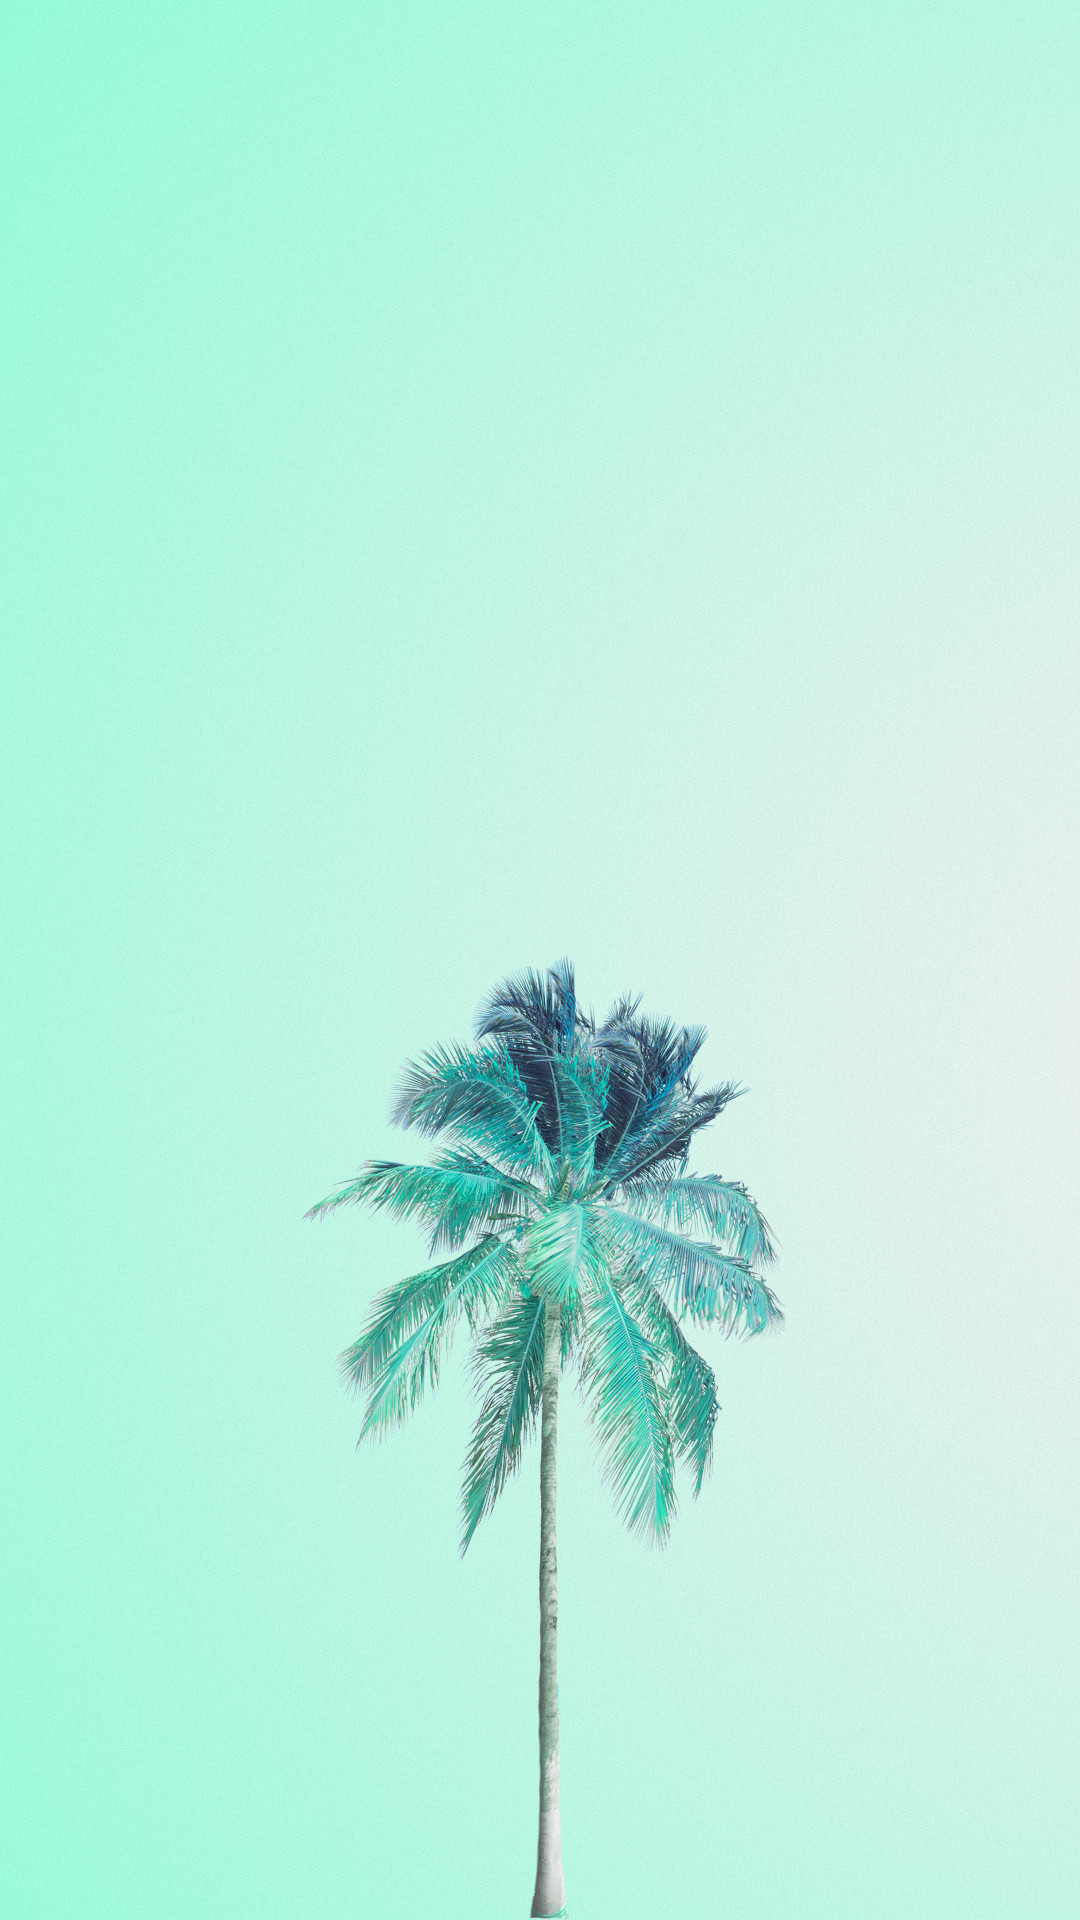 Mind Green & The lonely PalmTree